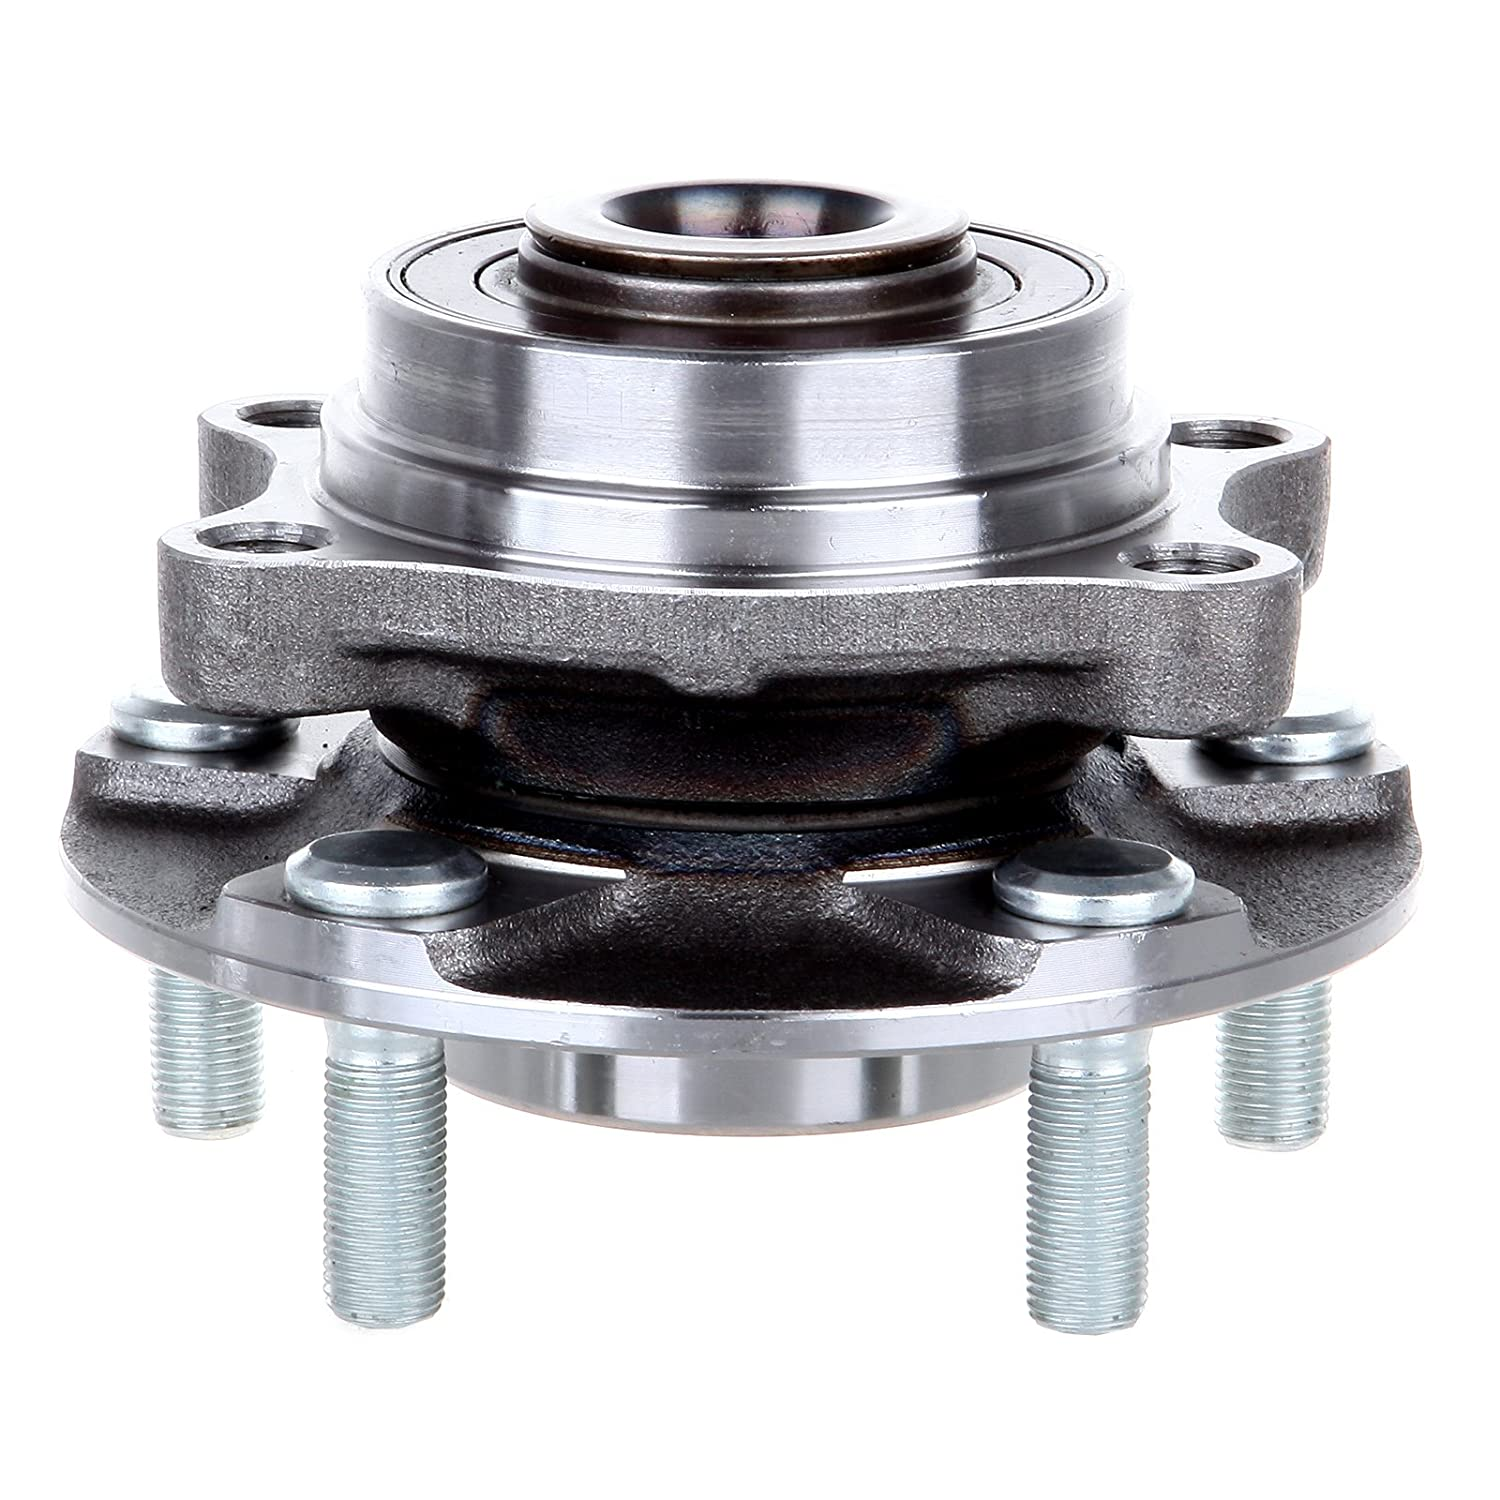 ECCPP Front Wheel Hub Bearing Assembly 5 Lugs w//ABS for 03-07 Infiniti Nissan Compatible with 513268